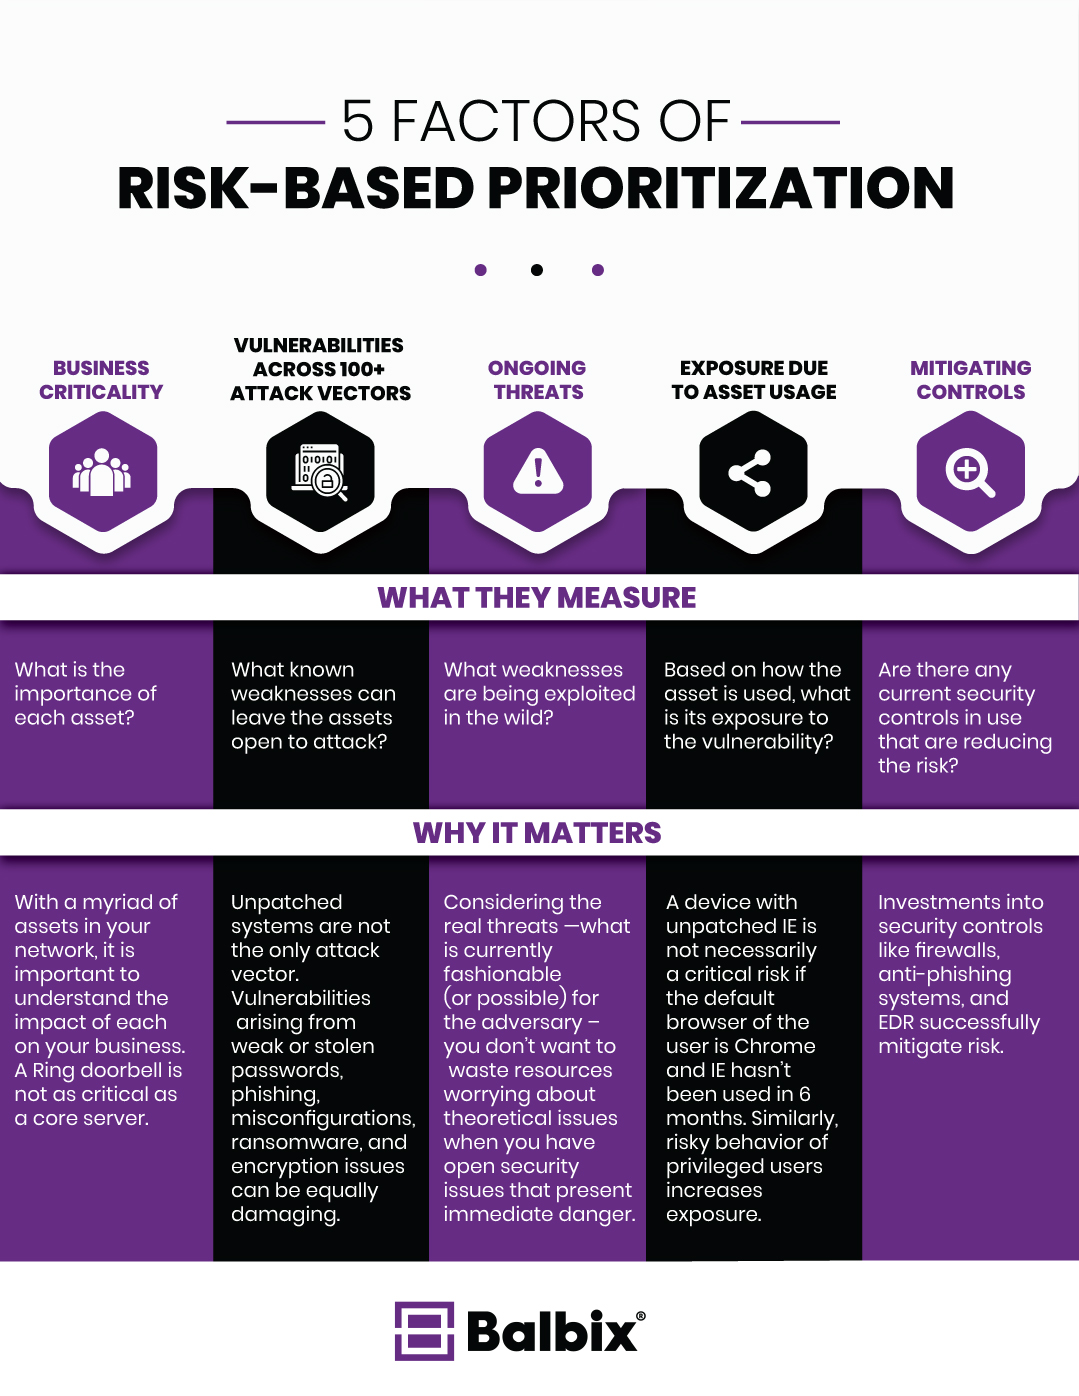 Factors of Risk-Based Prioritization